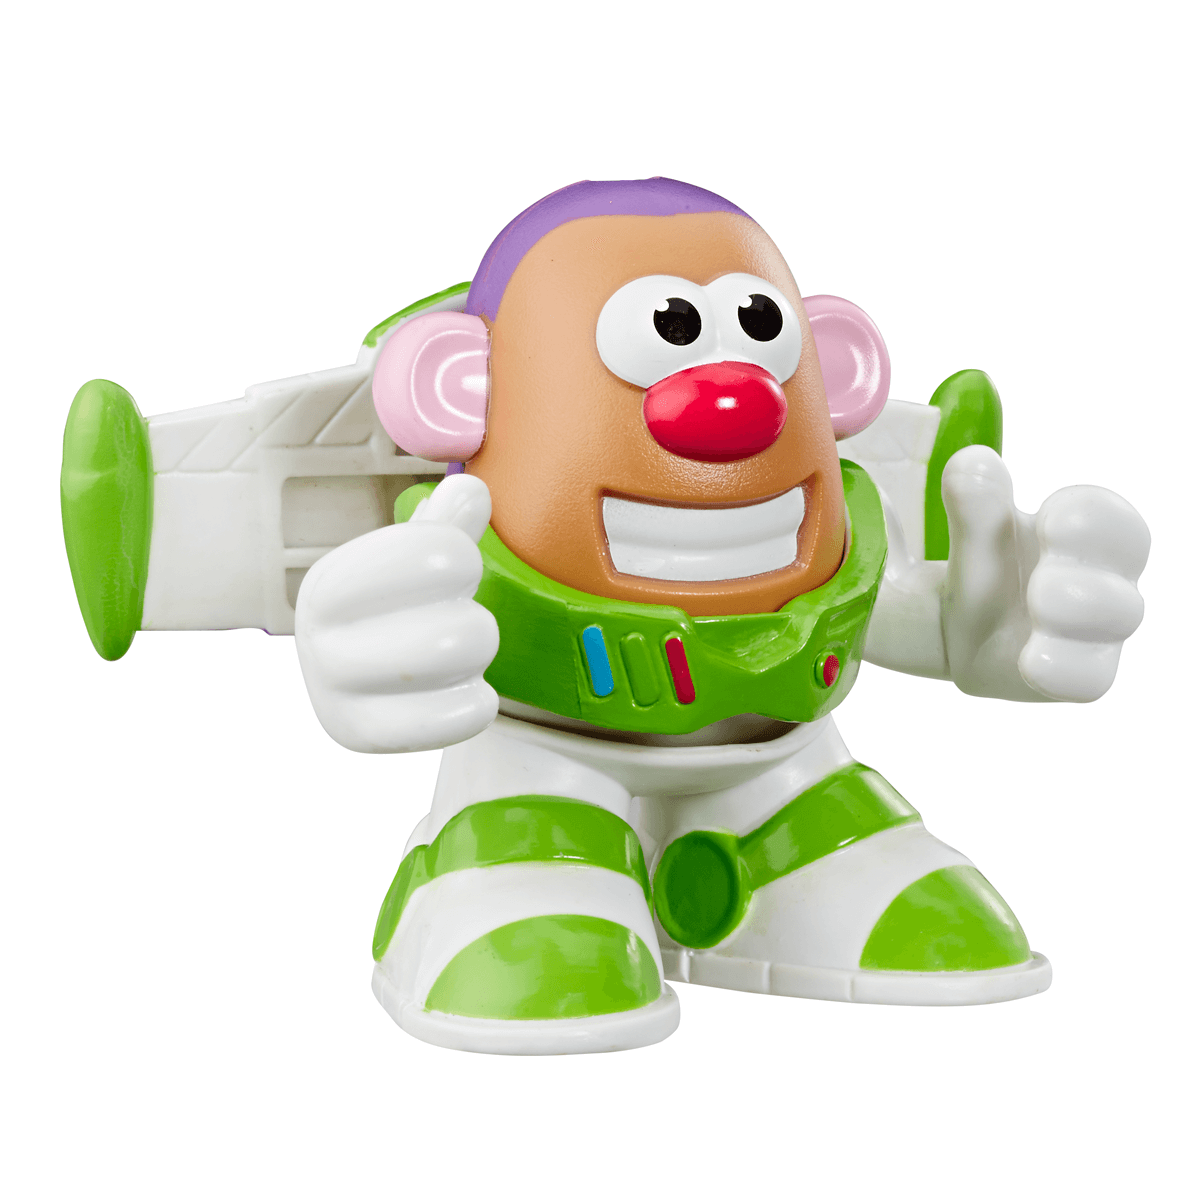 Disney Pixar Toy Story 4 Mini Mr Potato Head Buzz Lightyear